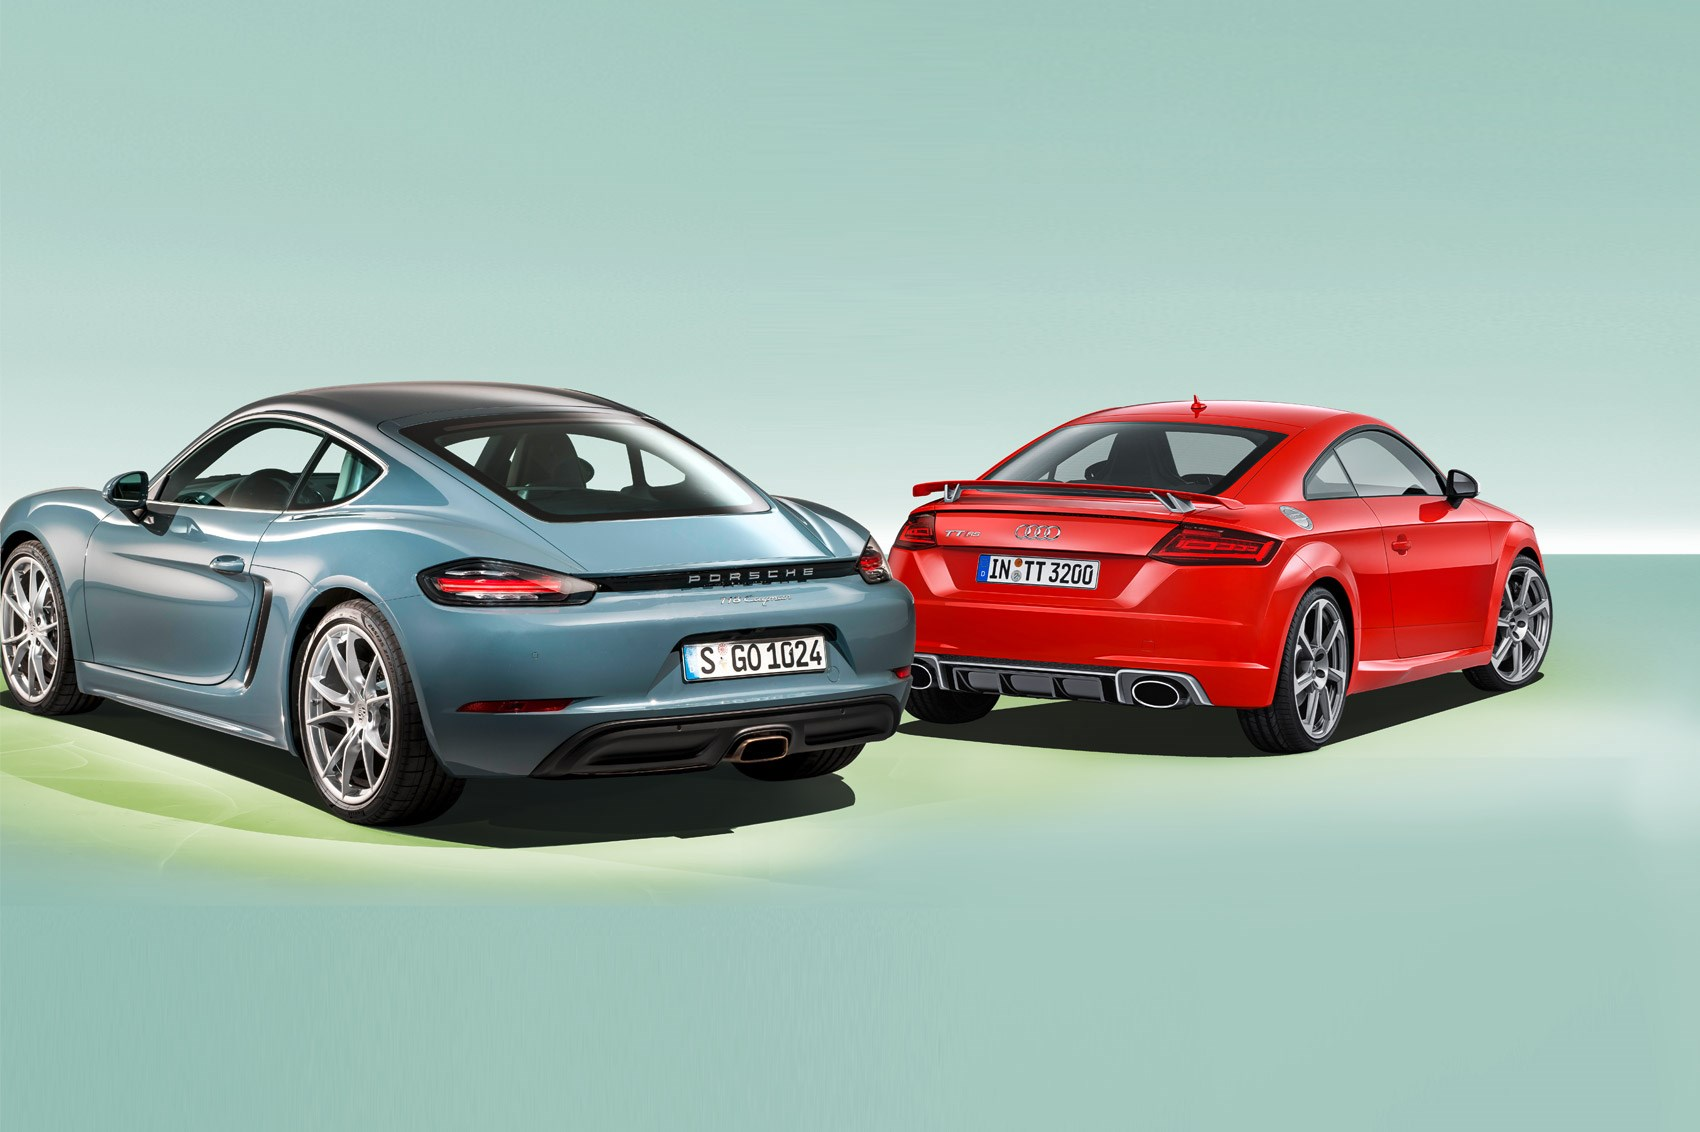 Audi Vs Porsche Rampant Tt Plots Fall Of The House Of